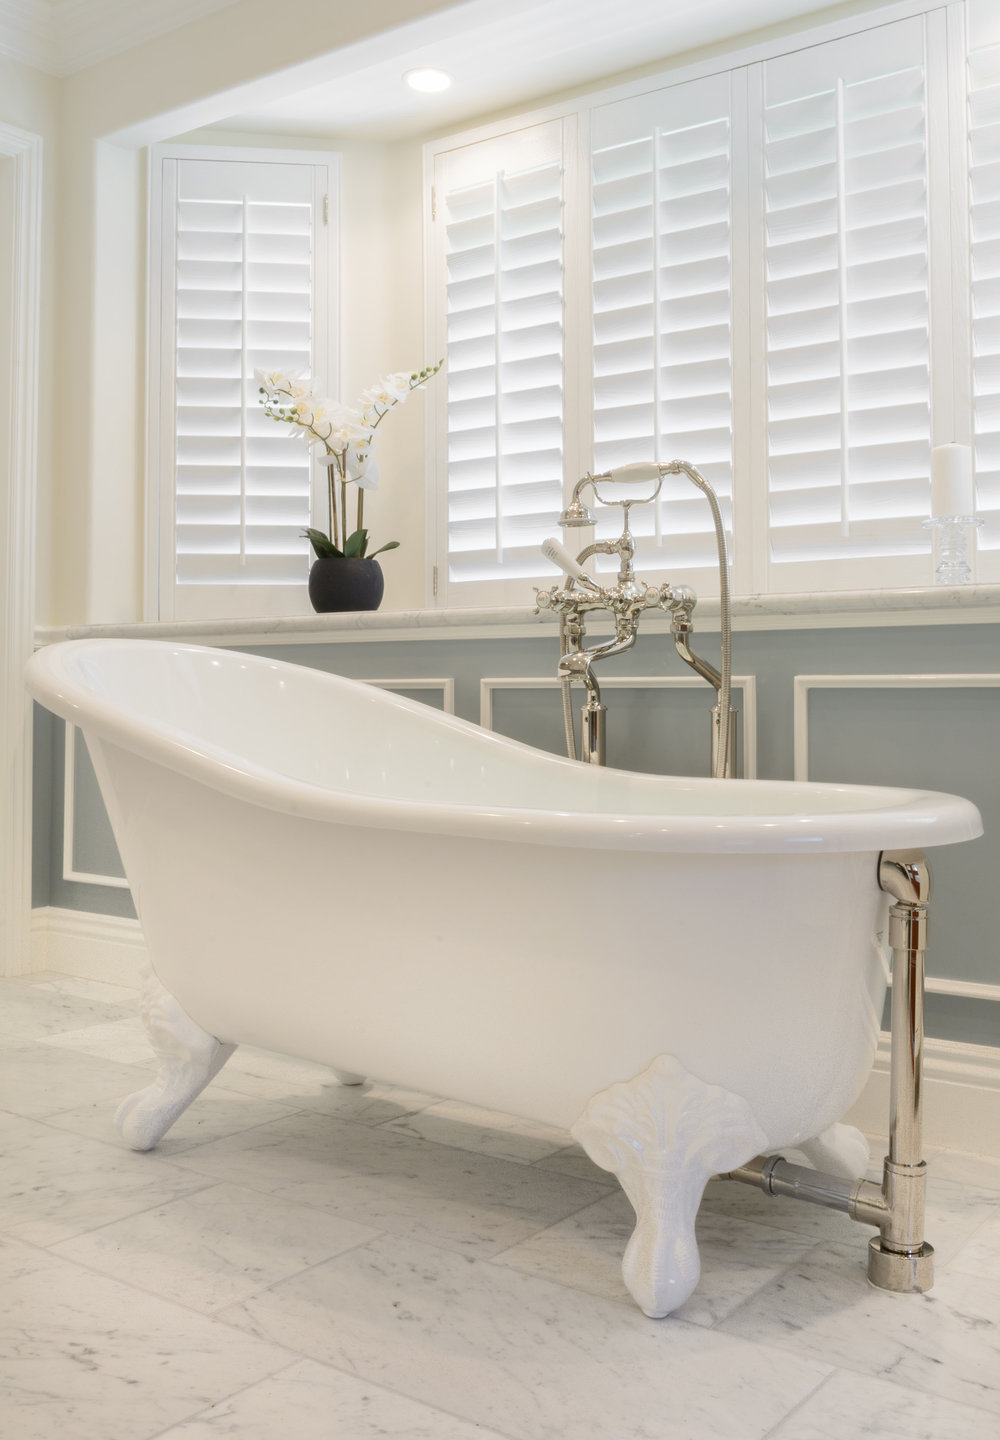 Crisp white clawfoot bathtub, soft grey carrera marble floor, large bay window with white interior shutters, overhead lighting and overall soft neutral colors provide for a relaxing experience